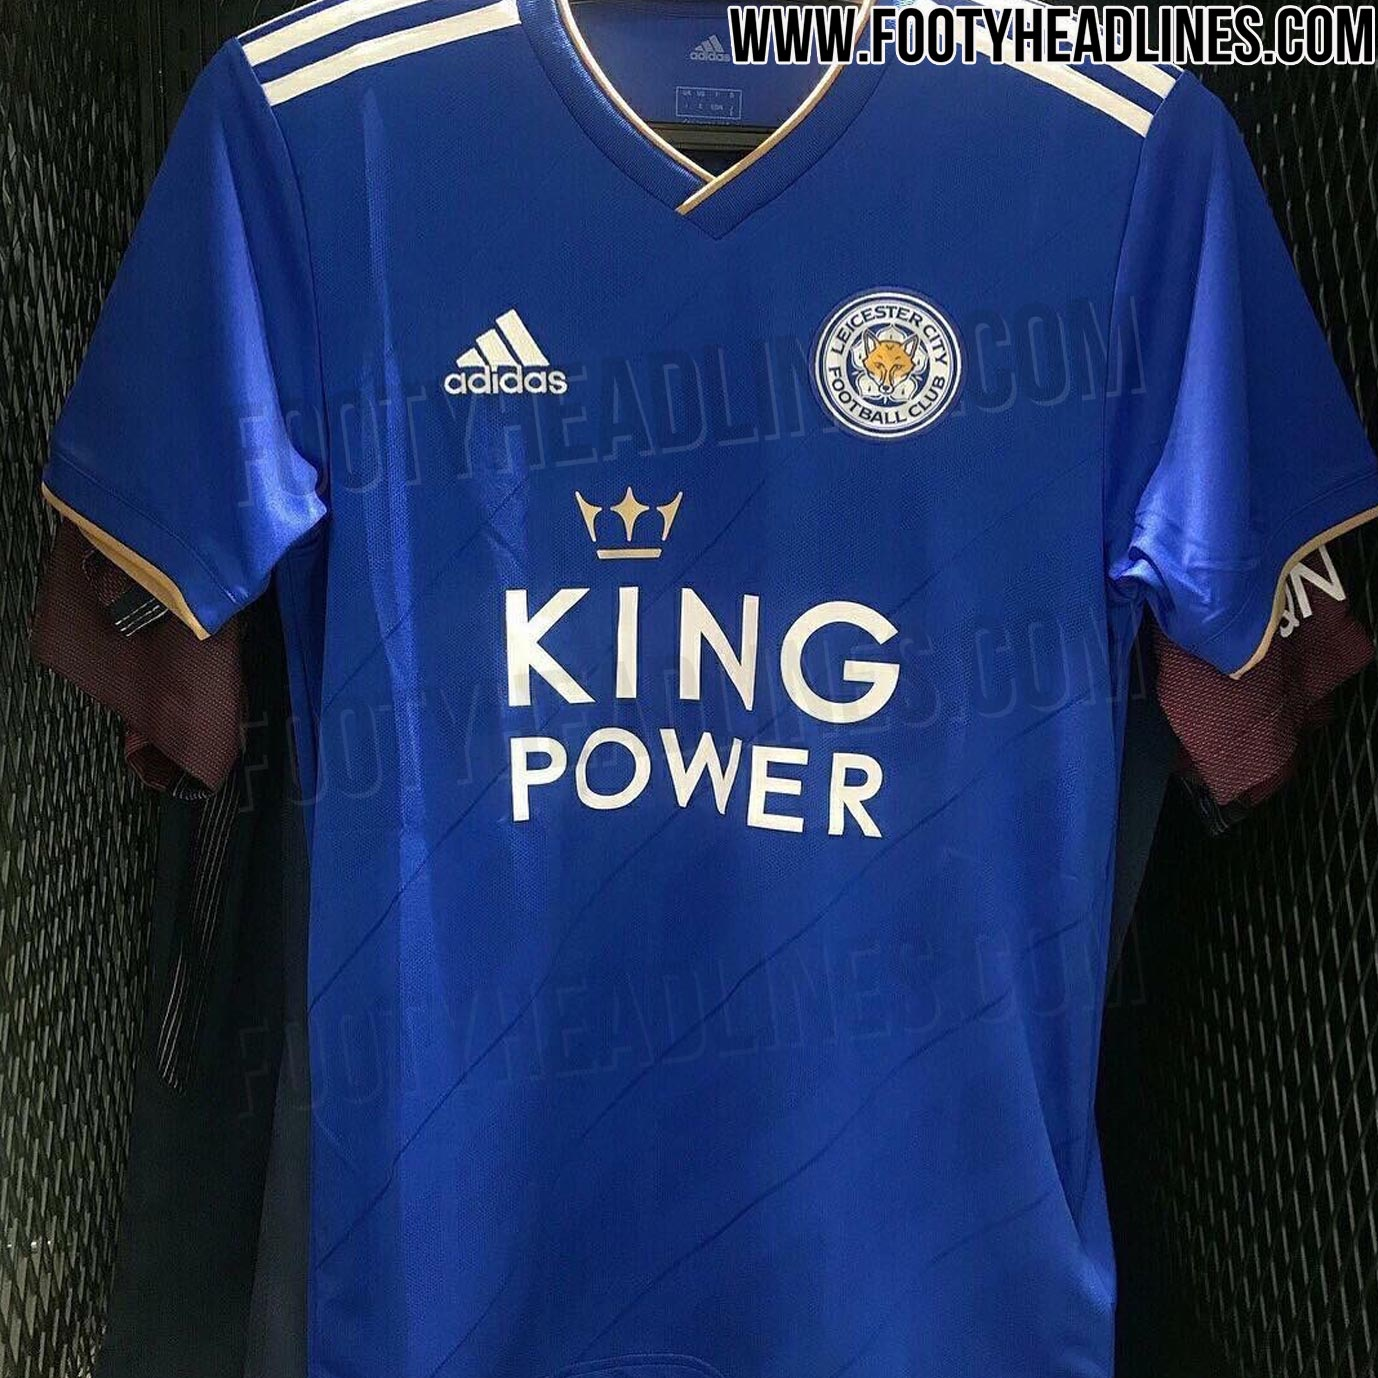 8af3191de444 The new Leicester City 18-19 home kit has been leaked. It is made for the  first time by Adidas who are replacing current kit maker Puma.